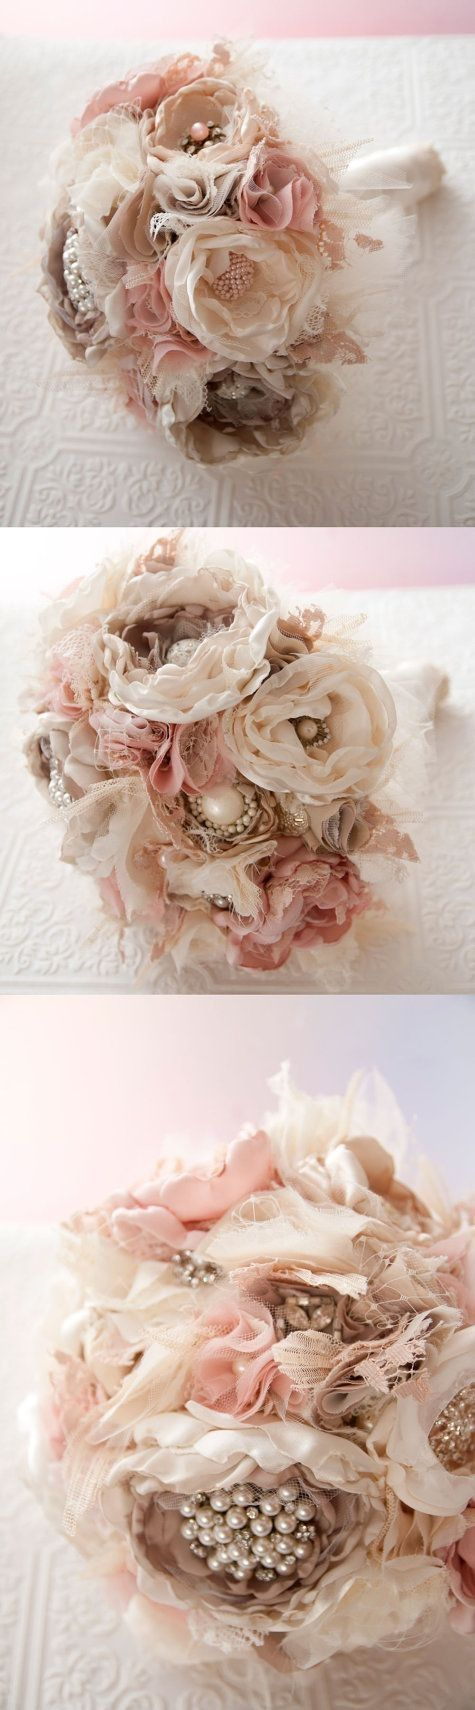 59 best wedding flowers images on pinterest bridal bouquets fabric bouquet brooch bouquet fabric flower wedding bouquet with rhinestone and pearl brooches silk blush flowers izmirmasajfo